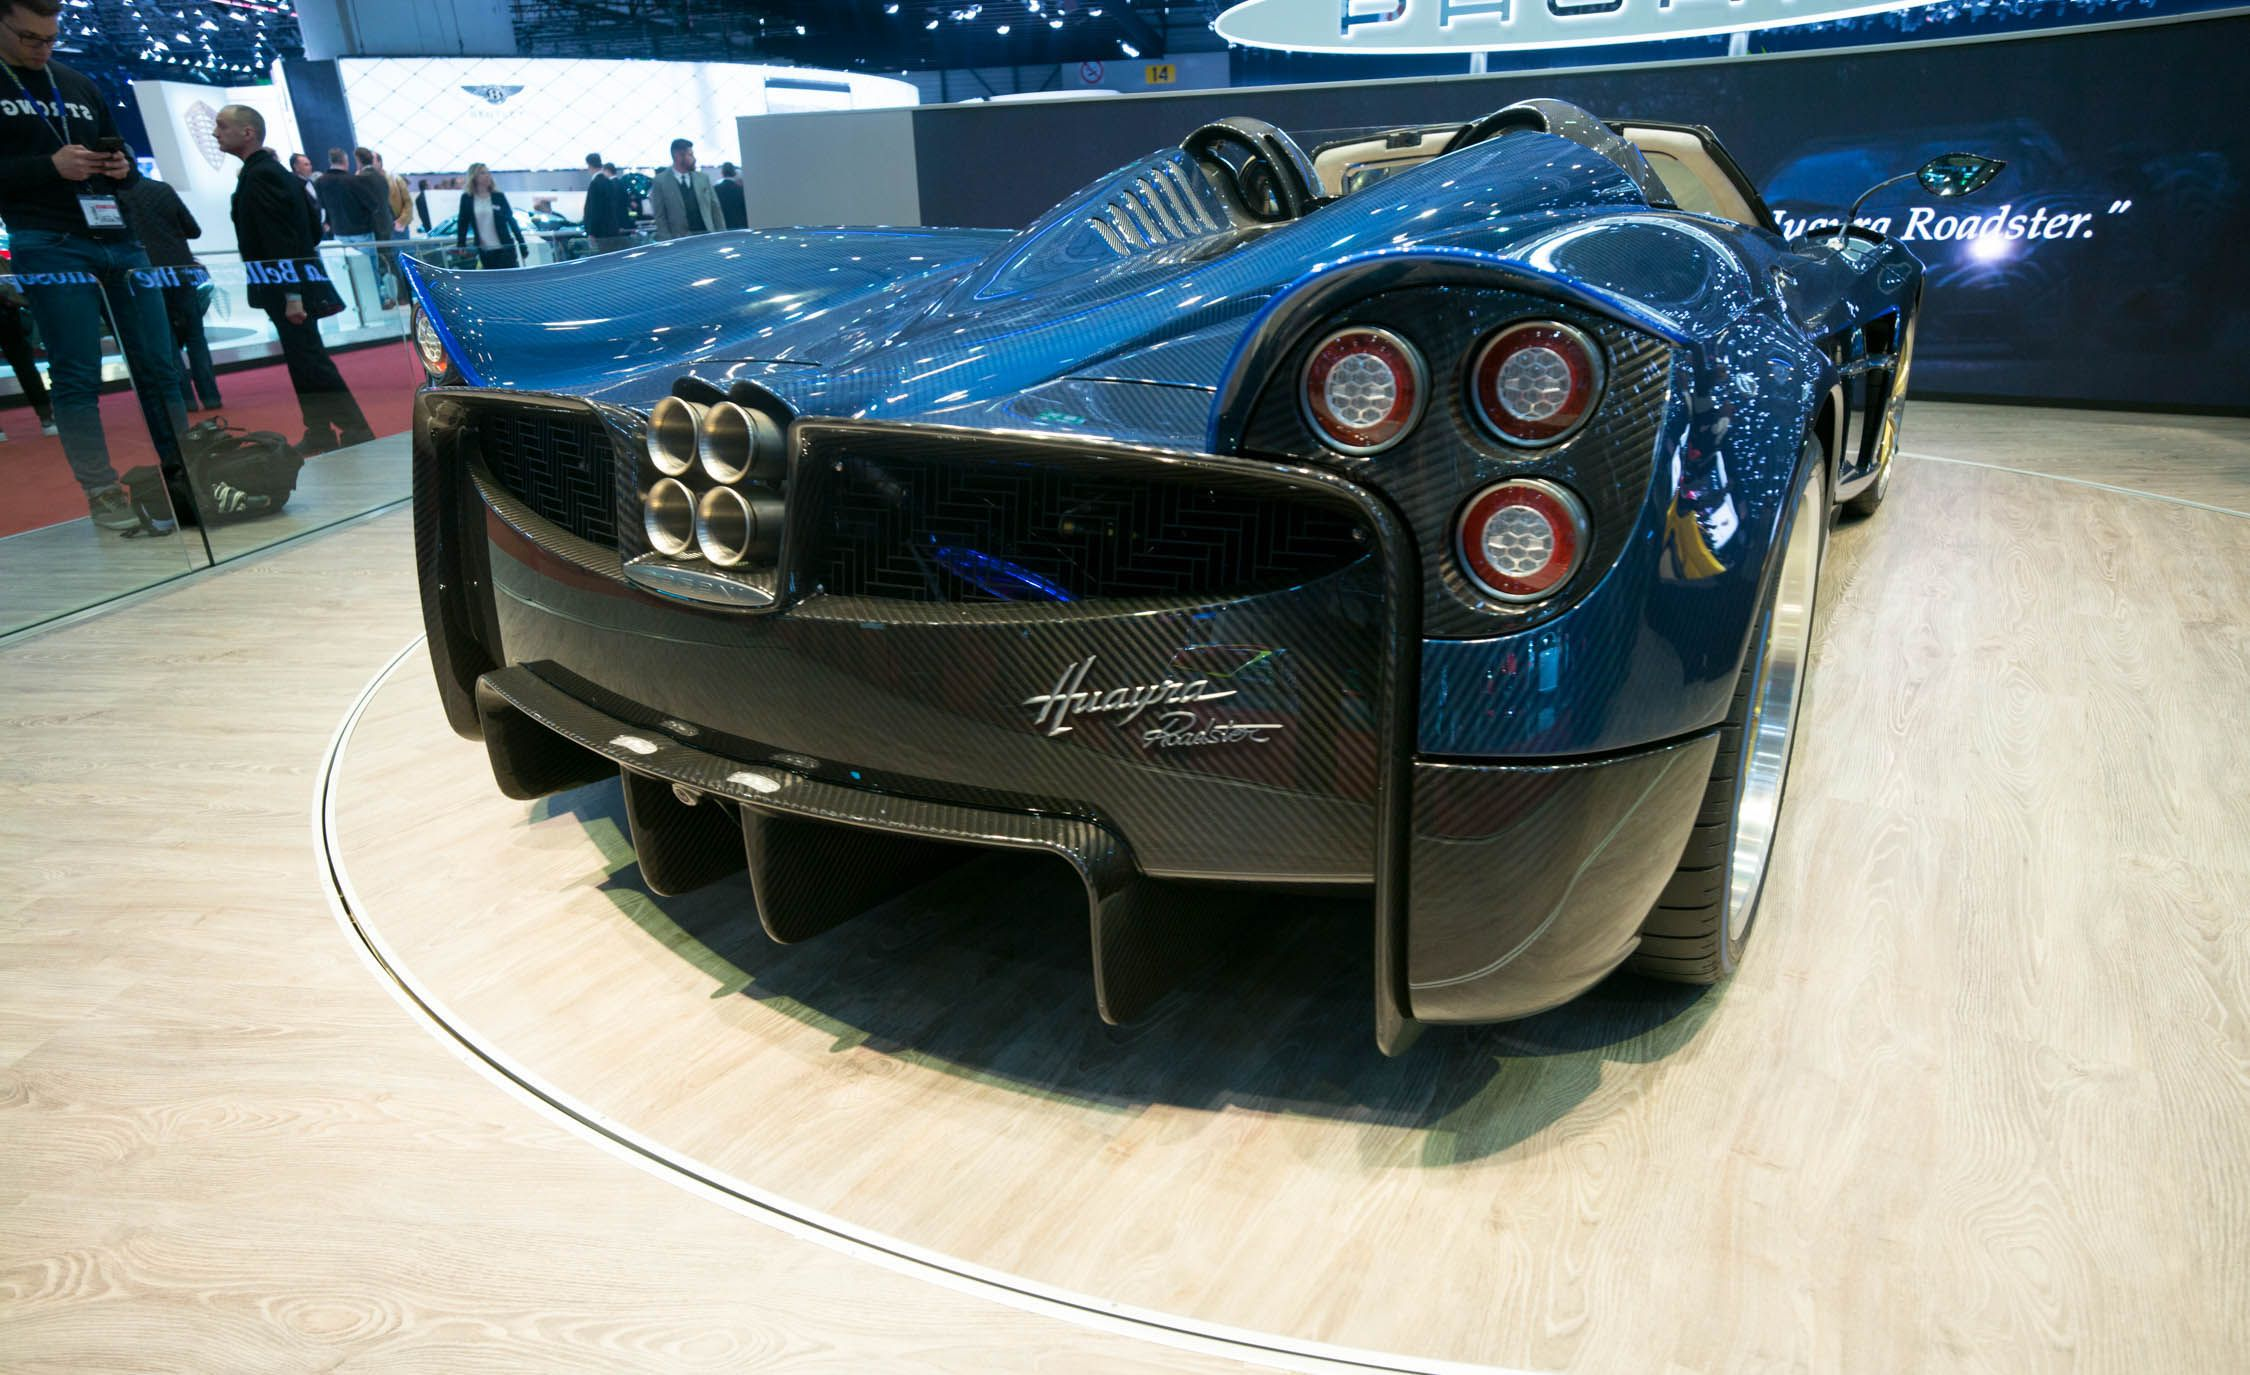 Delightful Pagani Huayra Reviews | Pagani Huayra Price, Photos, And Specs | Car And  Driver